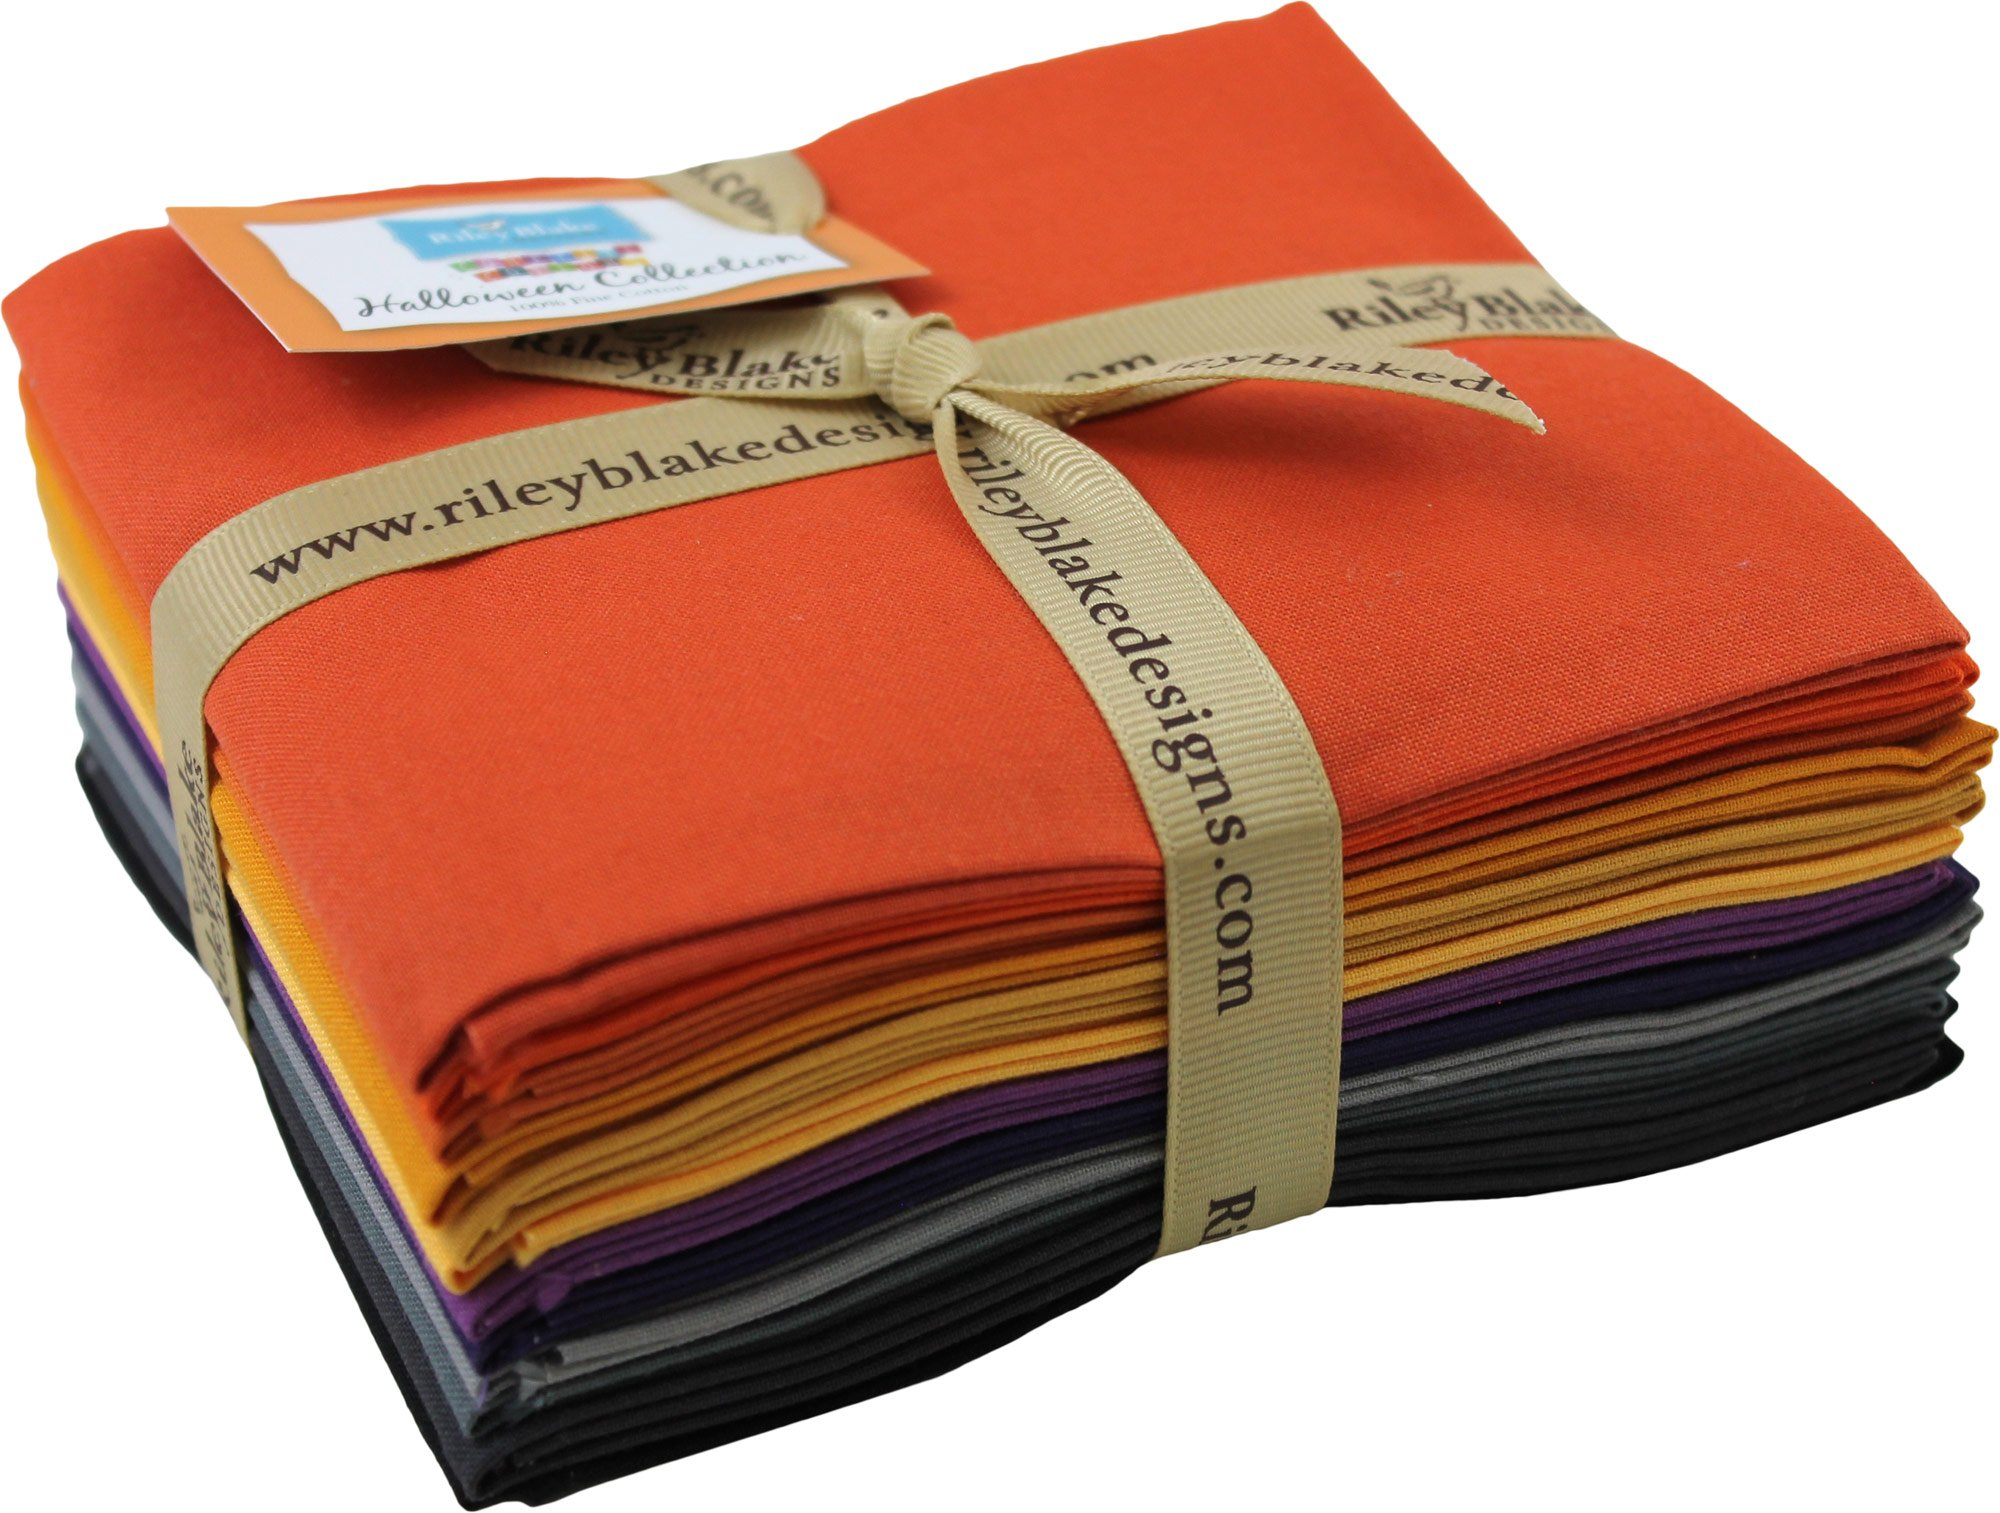 Confetti Cottons Halloween Rolie Polie 40 2.5-inch Strips Jelly Roll Riley Blake Designs RP-HA120-40